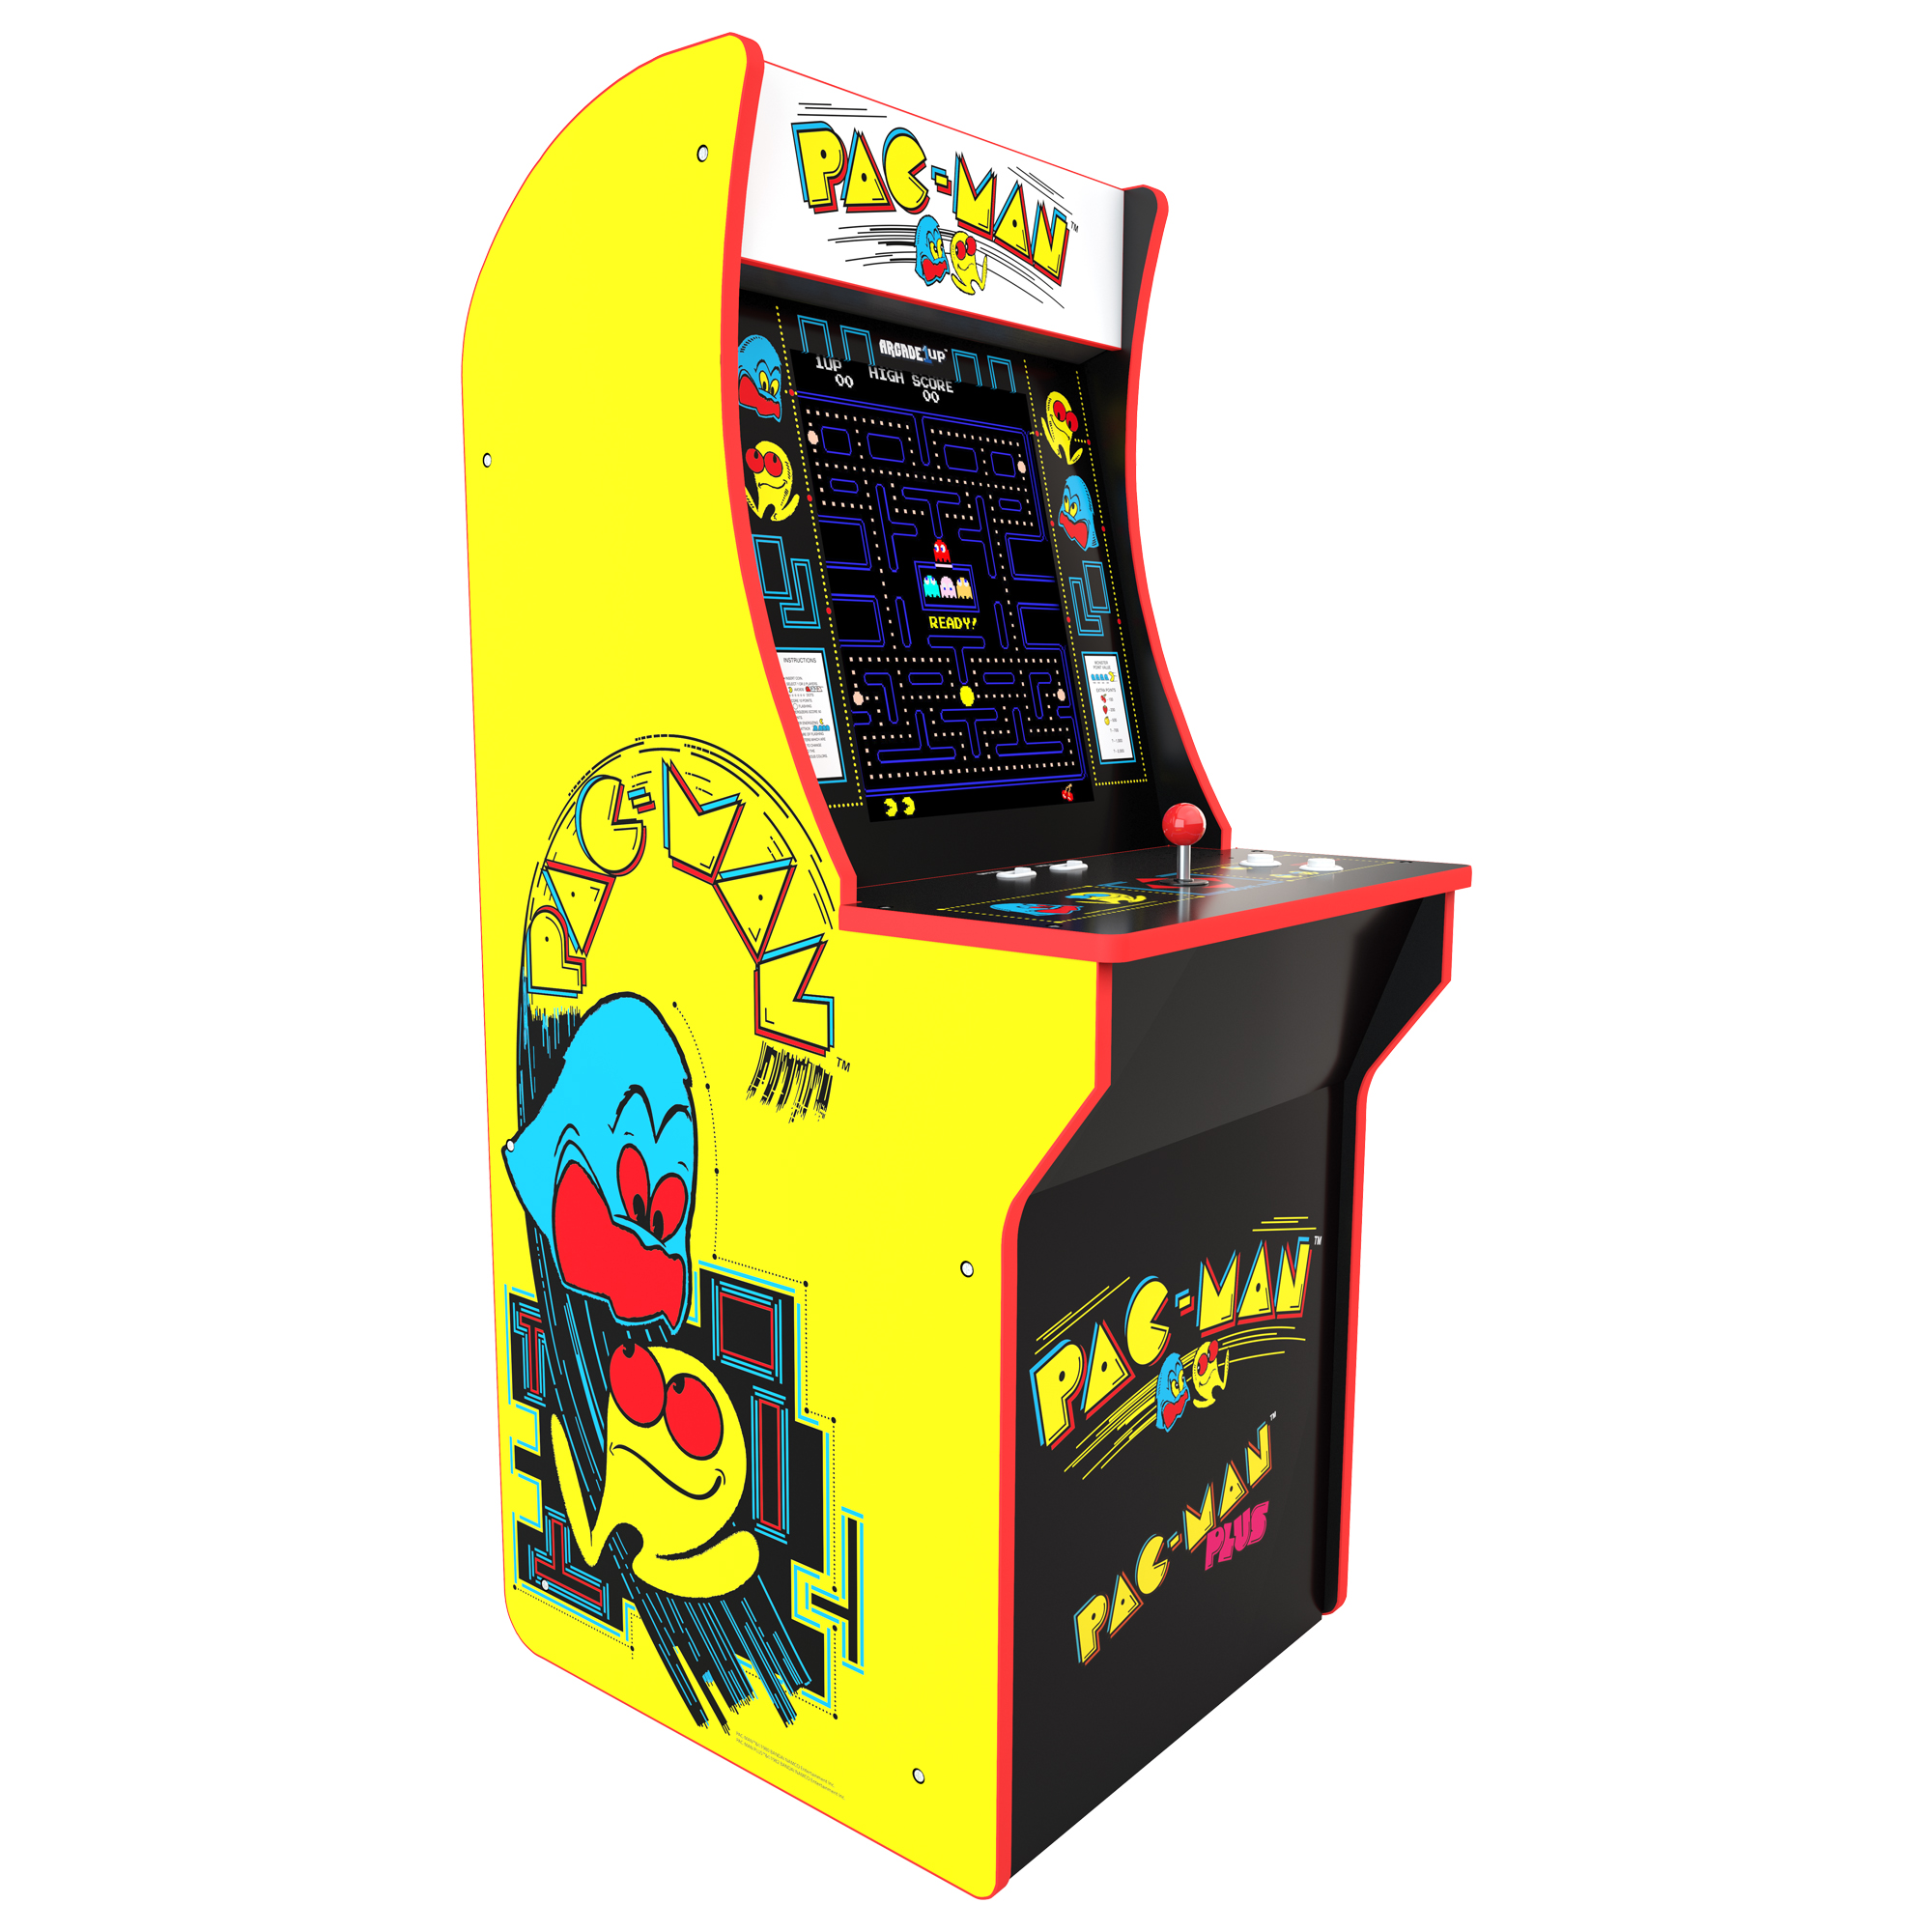 Groovy Pacman Arcade Machine Arcade1Up 4Ft Download Free Architecture Designs Crovemadebymaigaardcom